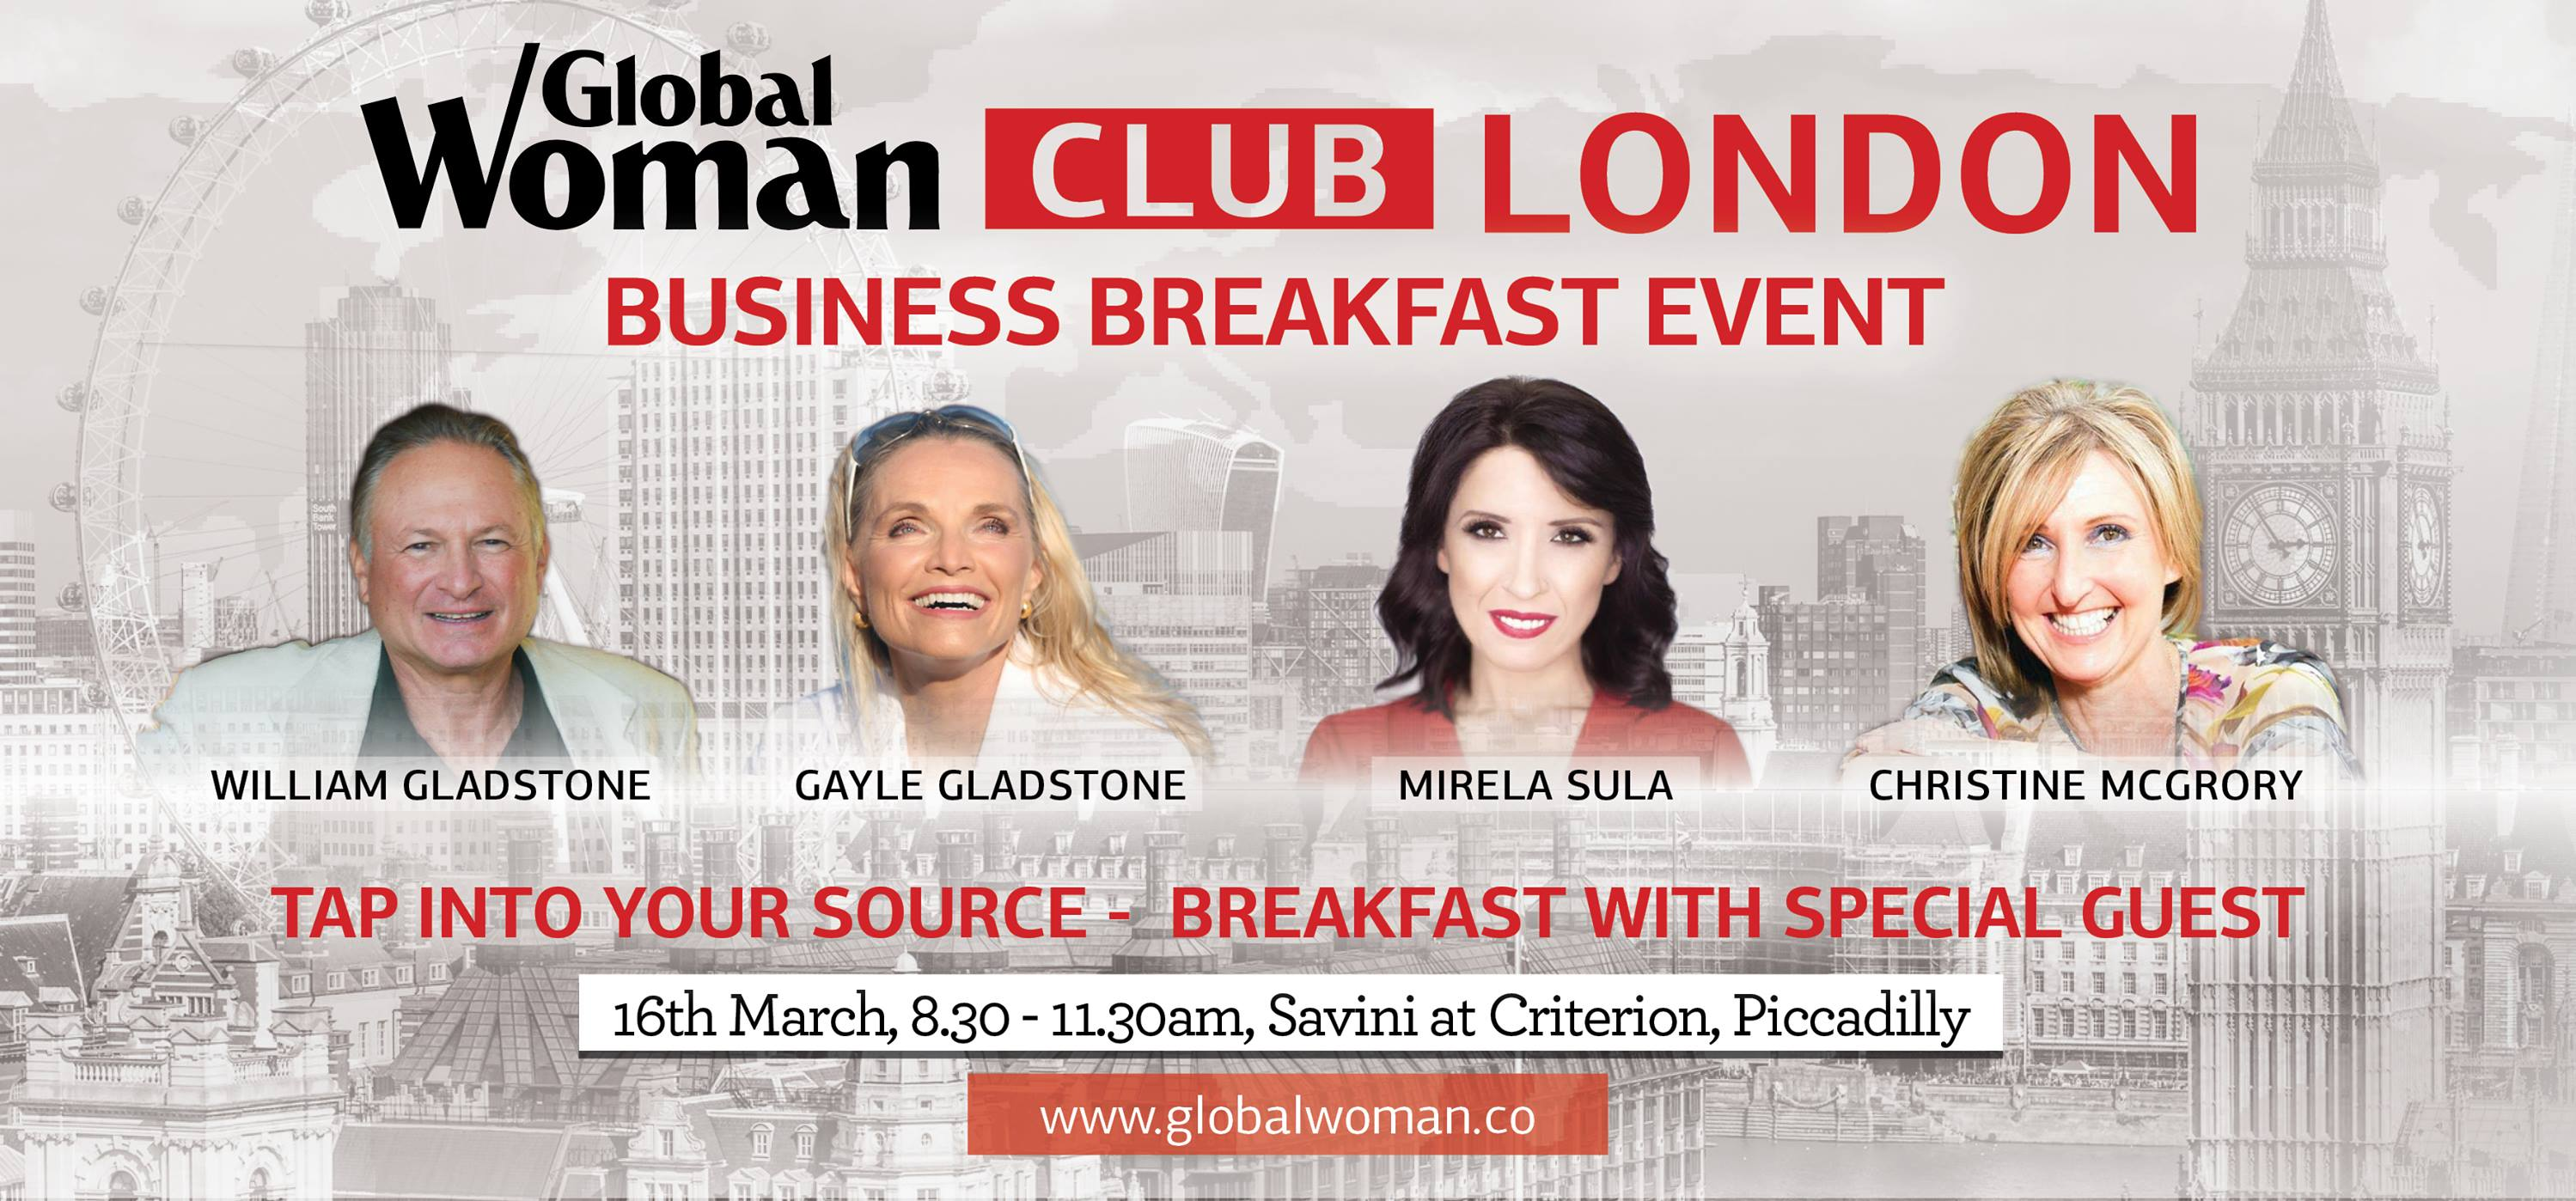 global women 14-15 july, global woman summit 2018 – new york city, which promises to be  an exciting setting for the 2-day summit every person attending will be inspired.